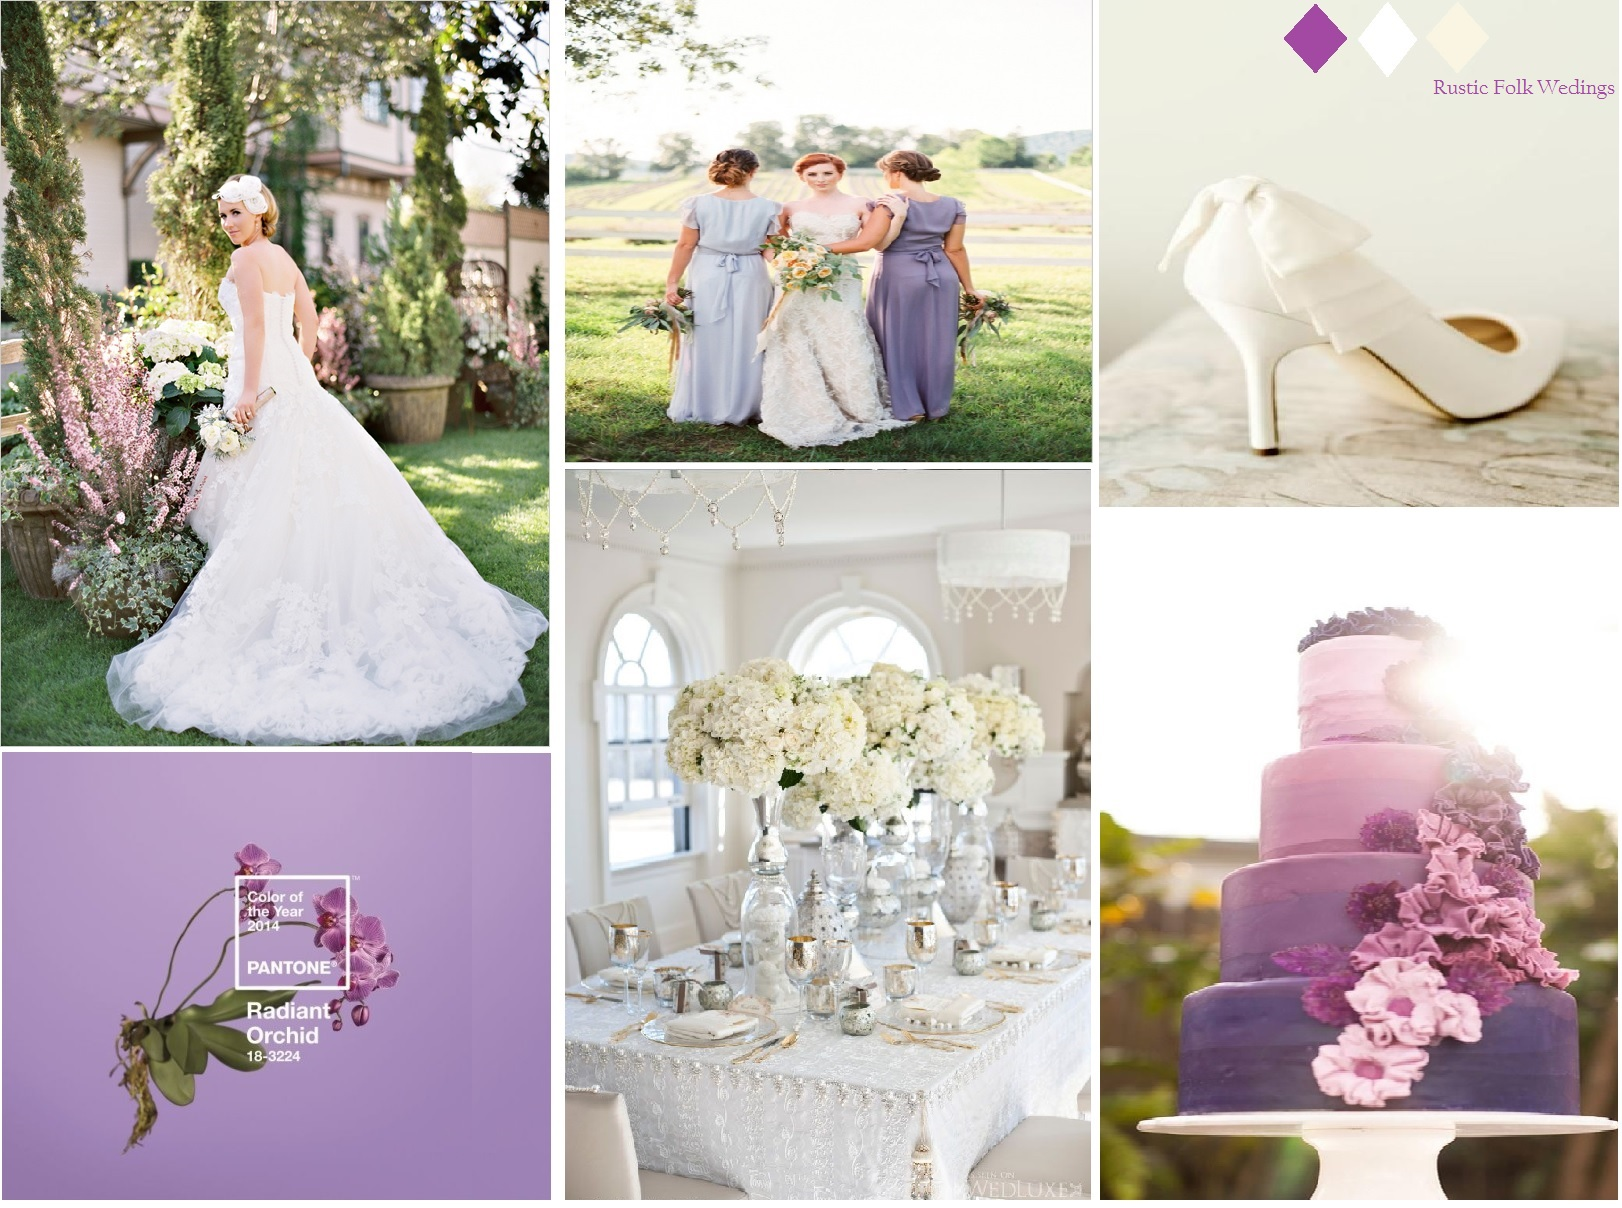 radiant-orchid wedding inspiration board